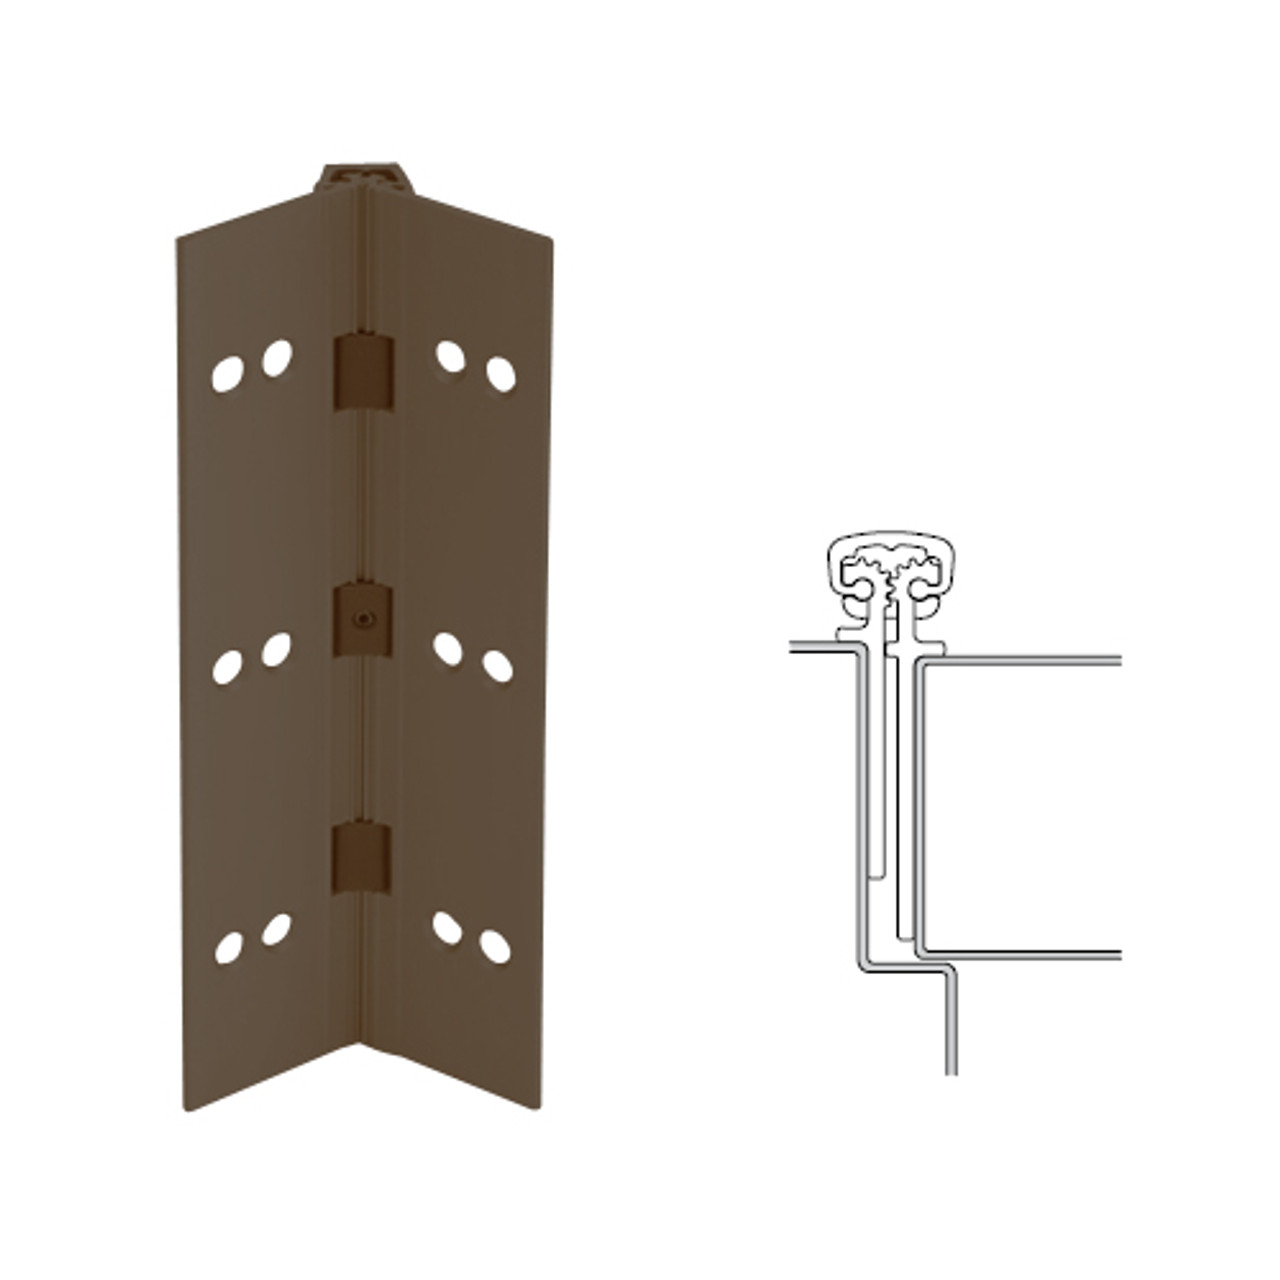 026XY-313AN-95-EPT IVES Full Mortise Continuous Geared Hinges with Electrical Power Transfer Prep in Dark Bronze Anodized